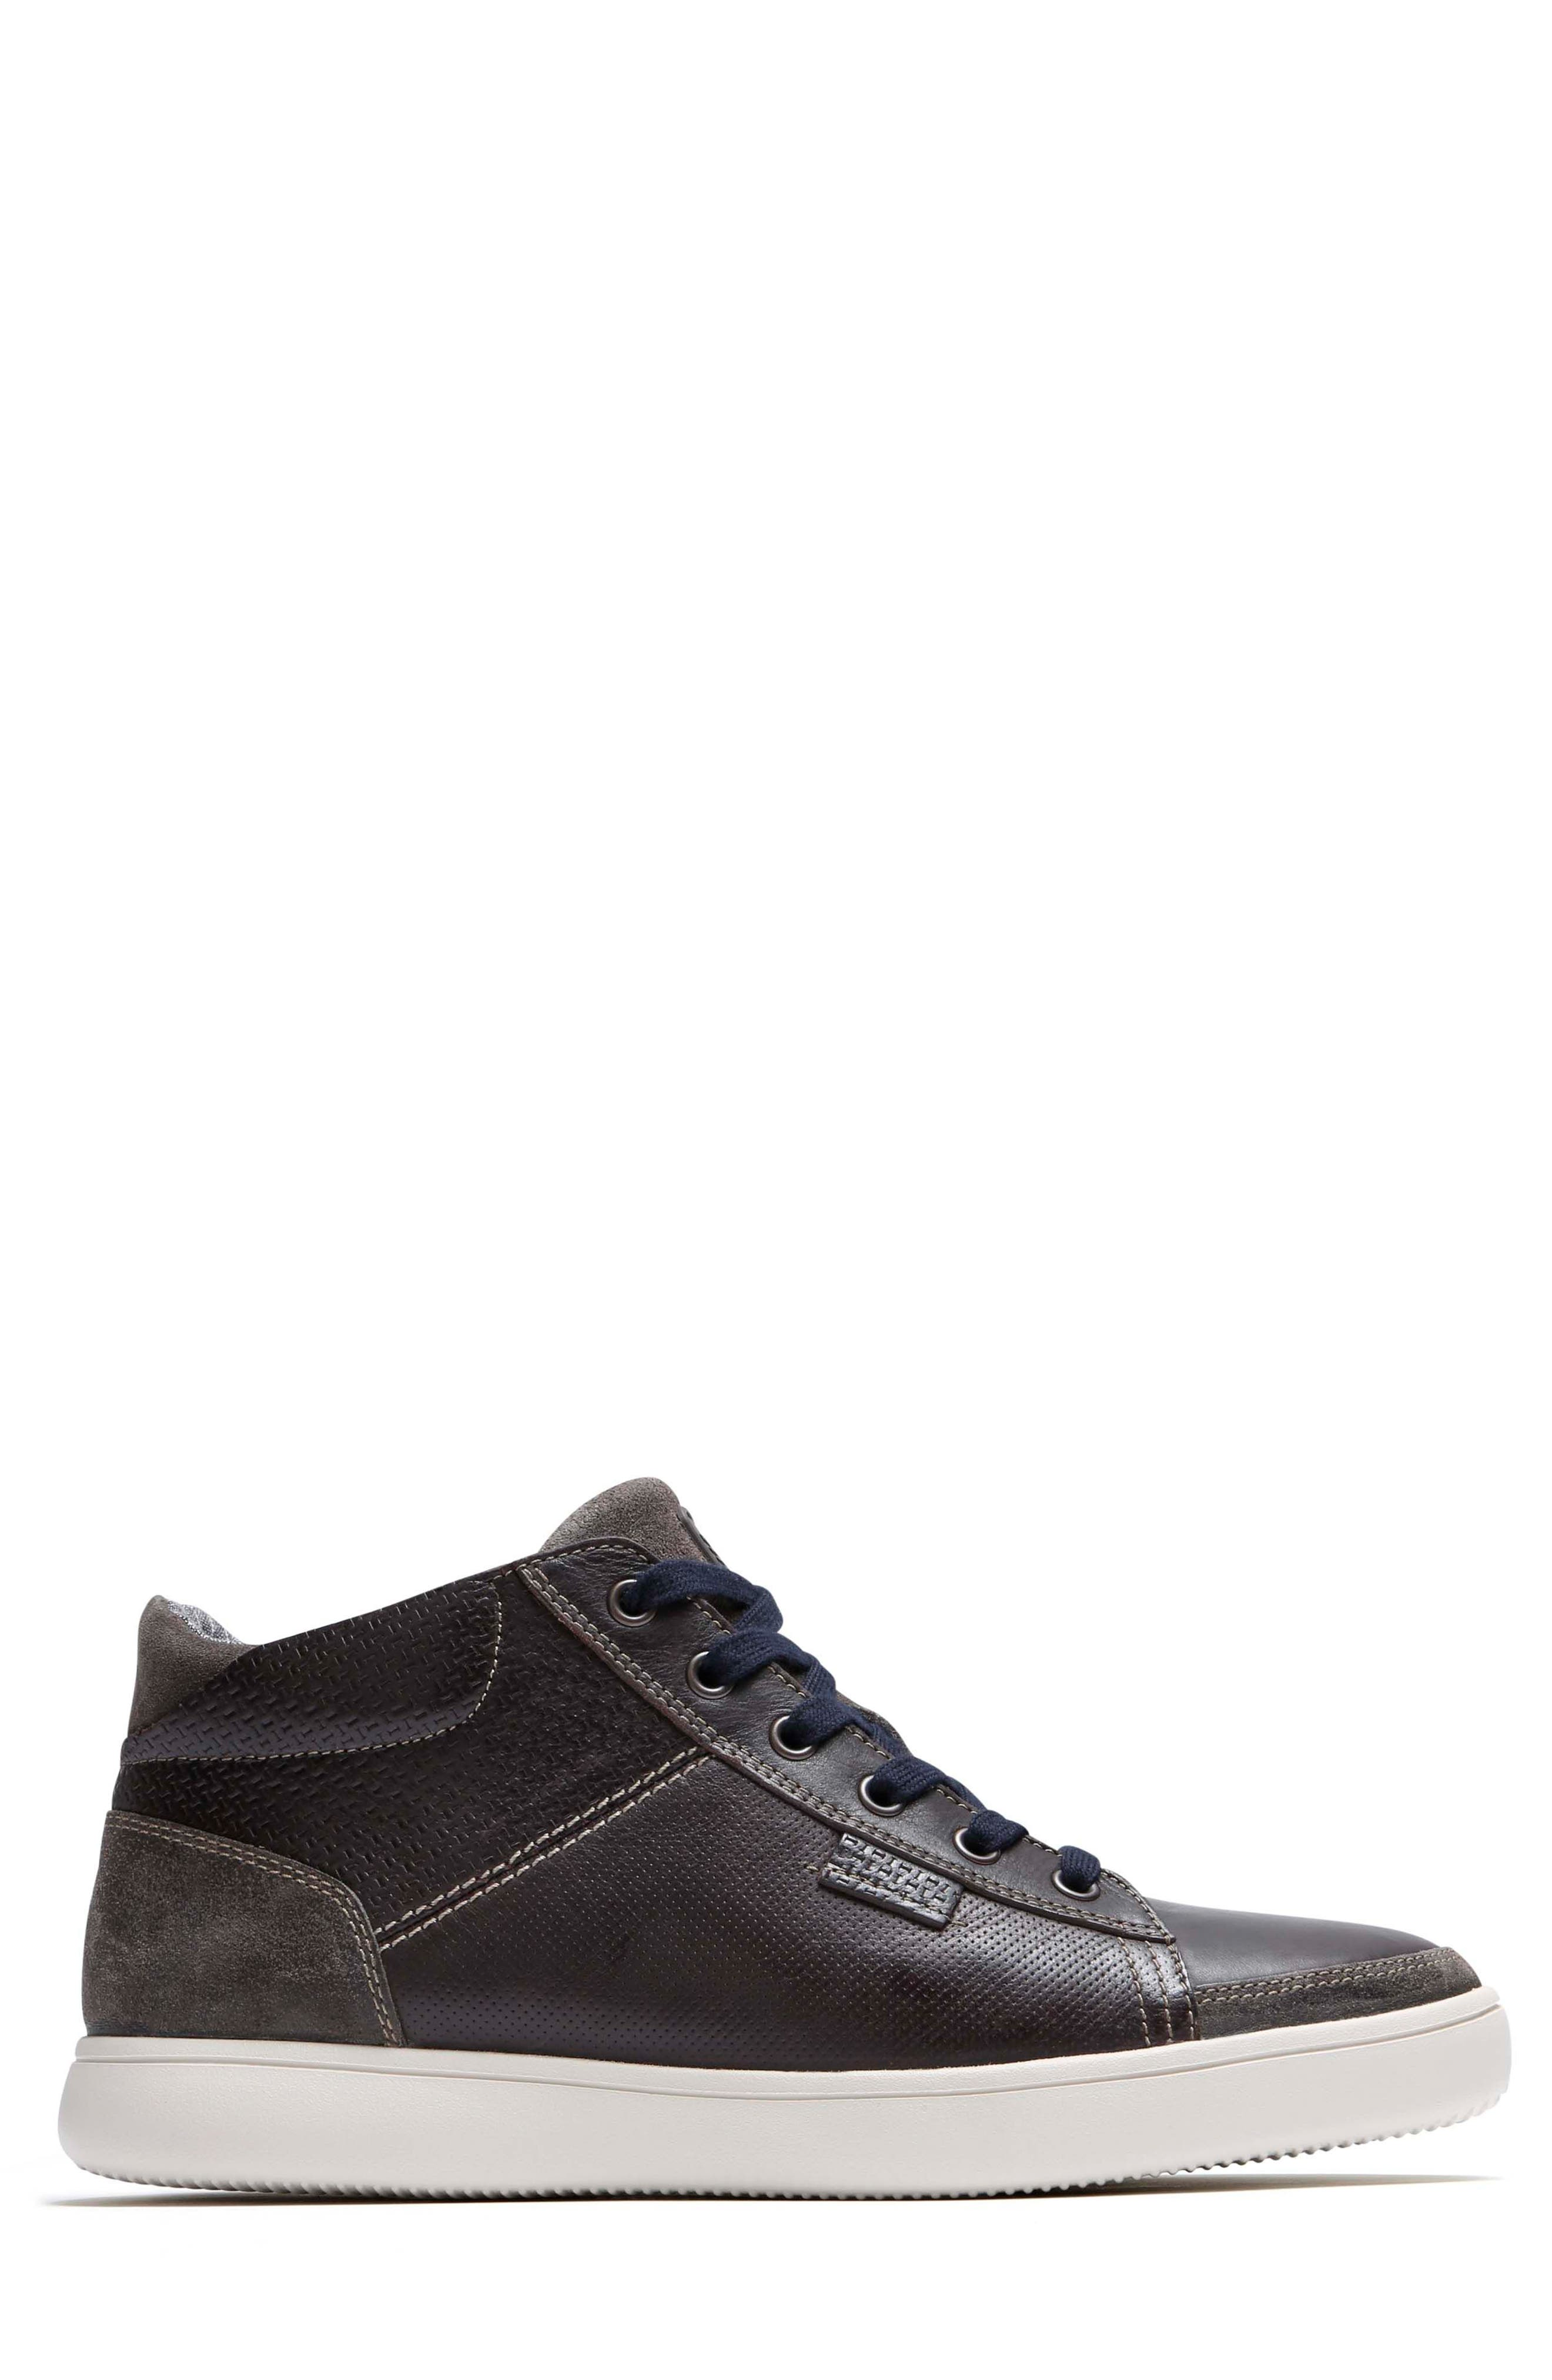 Colle Sneaker,                             Alternate thumbnail 3, color,                             COFFEE LEATHER